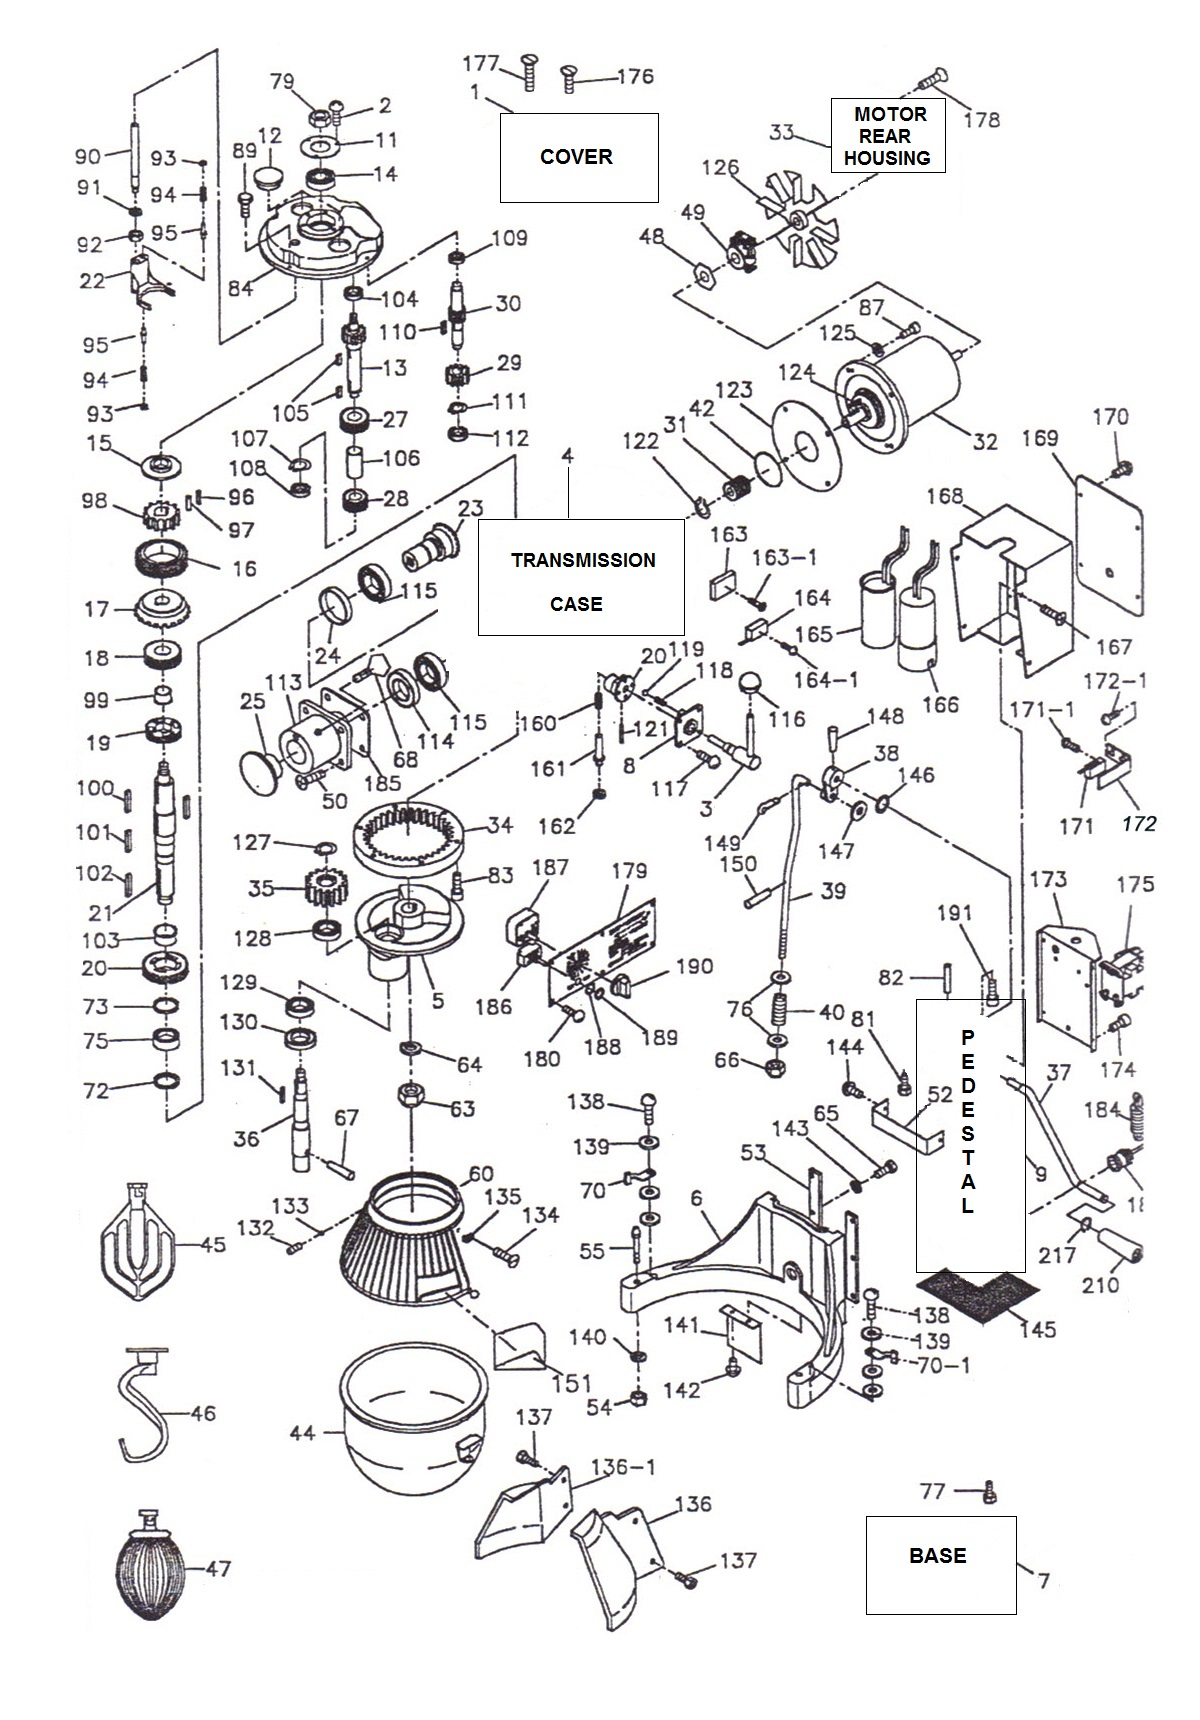 wiring diagrams of 1965 buick riviera part 2